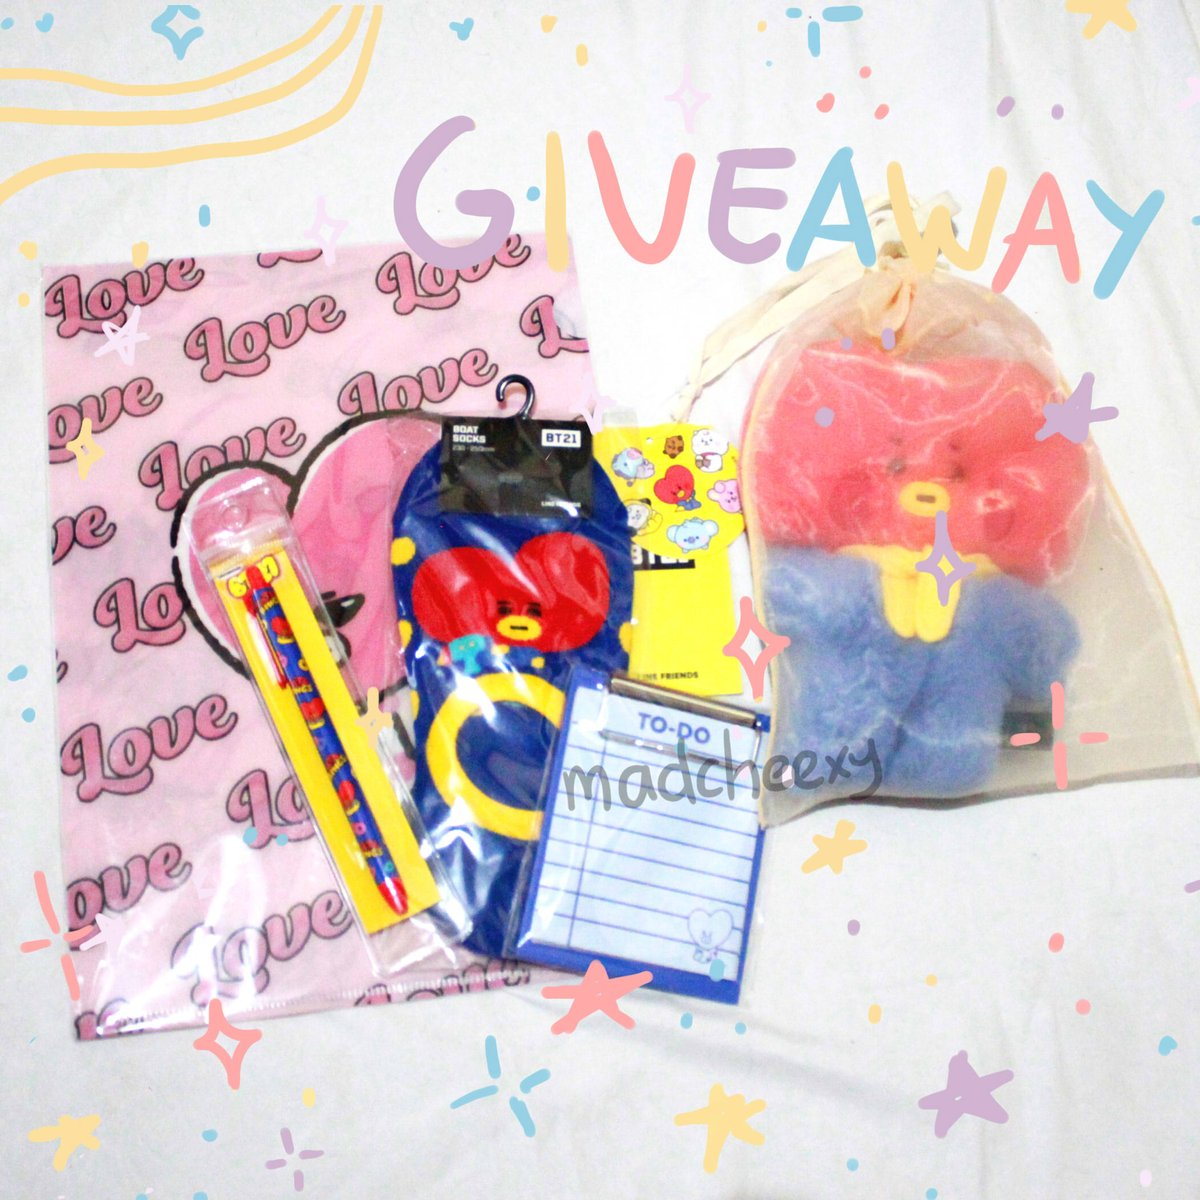 SHOP OPENING GIVEAWAY  Thank you for the support all this time! Here's a giveaway as my gratitude  Follow + RT to enter No giveaway account/private account Worldwide  My Shop:  https:// madcheexy.bigcartel.com /      https:// forms.gle/8oRRHc65ymk1E4 34A  …   Ends Feb 24, 2020  DM for GOs<br>http://pic.twitter.com/HQmeF15ekV